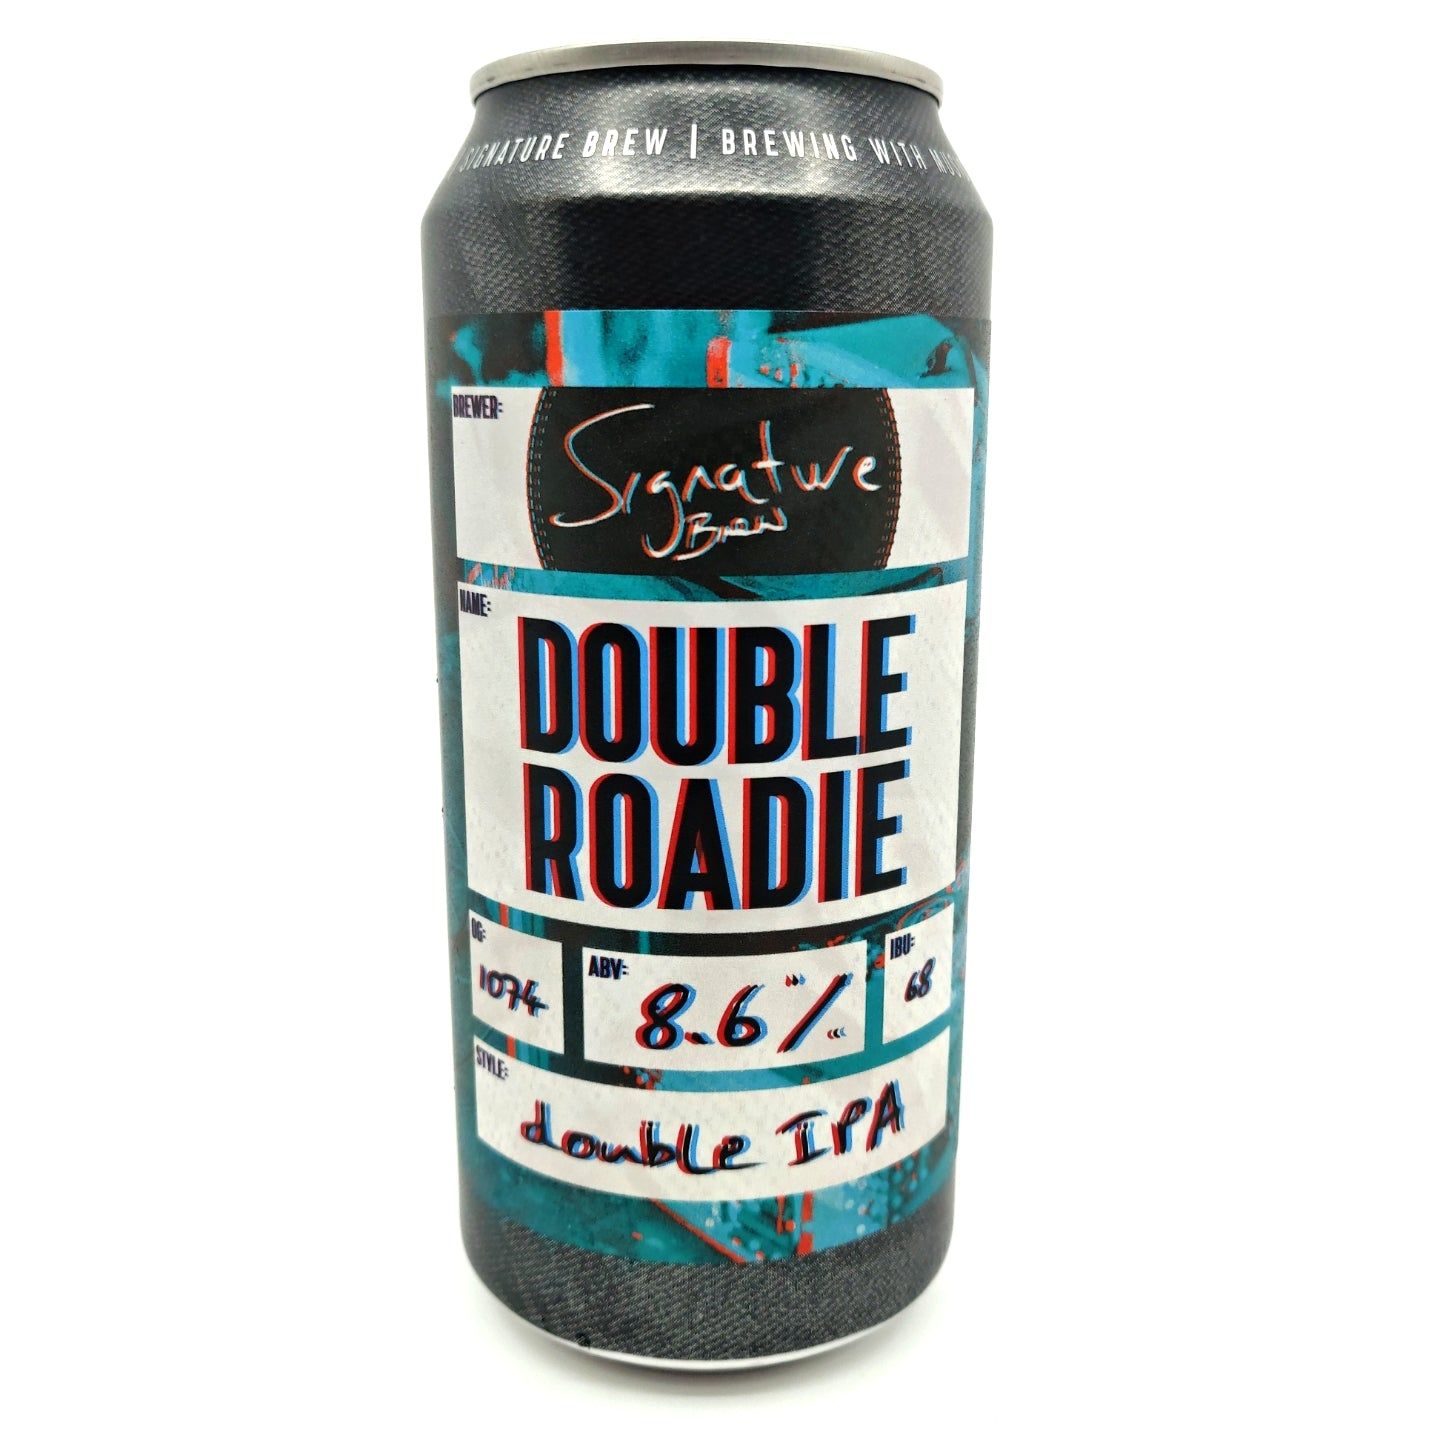 Signature Brew Double Roadie Double IPA 8.6% (440ml can)-Hop Burns & Black